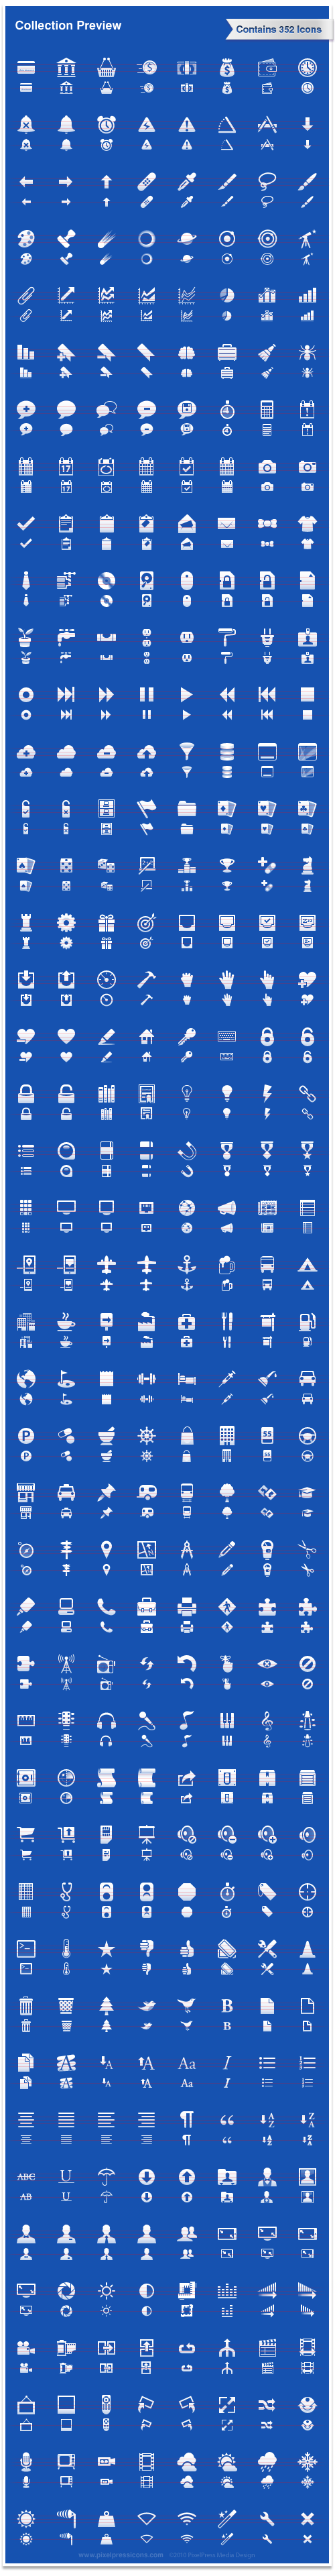 iPhone Icons, Tool Bar Icons, Tool Tab Icons, Glyphs, Pictograms, 30x30, 20x20, ATM Card, Add Chat, Add to Cloud, Airplane, Alarm, Anchor, Angle, Announcer Microphone, Aperture, Arrow Down, Arrow Left, Arrow Right, Arrow Up, Attach, Bank, Bar Graph 1, Bar Graph 2, Bar Graph 3, Basket, Beer, Black Moleskine, Bold, Bookmark, Bow Tie, Breifcase, Brightness, Broom, Calendar Day of Week, Calendar Day, Calendar Month, Calendar Week, Camera, Camping, Cardboard Box, Chat, Chats, Checkmark, Clipboard Alt 1, Clipboard Alt 2, Clipboard, Clock, Closed Combination Lock, Closed Mail, Cloud, Coffee, Compass, Compress, Contact, Contrast, Crop, Cue End, Cue Forward, Cue Pause, Cue Play, Cue Reverse, Cue Start, Cue Stop, Cut, DSLR Camera, Database, Desktop, Detour, Directions, Document Alt 1, Document, Documents, Download, Electrical, Equalizer, Fade In, Fade Out, Filing Cabinet, Film Camera, Film Roll, Filter, First Aid, Flag, Flip Horizontal, Flip Vertical, Folder, Font Decrease, Font Increase, Font, Food, For Sale, Fuel, Game Controls, Game Piece Knight, Game Piece Rook, Gear, Gift, Globe, Go Light, Golf, Grocery Bag, Guage, Guitar, Gym, Headphones, Heart, Home, Instruction, Italic, Key, Keyboard, Keypad, Level, Library, License, Light Off, Light On, Lightning Bolt, Line Graph 1, Line Graph 2, Line Graph 3, Line Graph 4, Link, List with Bullets, List with Numbers, List, Lock, Lodging, Loop, Magnet, Marker, Medal Coin, Medal Square, Medal Star, Megaphone, Microphone, Mix, Moleskine, Monitor, Movie, Music, Navigation Map, Needle, Newspaper, No Sound, Notes, Oil, Open Combination Lock, Open Mail, PC, Paint Roller, Pan, Paragraph Center, Paragraph Justify, Paragraph Left, Paragraph Right, Parked Car, Parking, Paste, Pencil, Phone, Piano Keys, Picture, Pie Graph, Pilcrow, Pills, Plant, Plumbing, Polaroid, Portfolio, Print, Puzzle Piece Alt 1, Puzzle Piece Alt 2, Puzzle Piece Alt 3, Quote, Radio Tower, Radio, Record, Refresh, Reload, Reminder, Remote, Remove Chat, Remove Red Eye, Remove from Cloud, Remove, Rotate Clockwise, Rotate Counter Clockwise, Ruler, Rx, Safe, Save Chat, Scale, Scanner, Settings, Ship's Wheel, Shopping Bag, Shopping Cart, Shopping Trolley, Shuffle, Shuttle, Slideshow, Sort Alphabetically, Sort Reverse Alphabetically, Sound Down, Sound Up, Sound, Speed, Spreadsheet, Star, Steering Wheel, Stop Light, Stop Sign, Stop Watch, Strikethrough, T-Shirt, TV, Tag, Target, Terminal, Thermometer, Thumb Tack, Thumbs Down, Thumbs Up, Tickets, Tie, Tools, Top Scores, Trailer Camping, Train, Trash Alt 1, Trash Alt 2, Treble Clef, Trophy, Umbrella, Underline, University, Unlocked, Upload to Cloud, Upload, User Picture, User With Bow Tie, User With Name Tag, User With Tie, User, Users, Video Camera, Video, Violin, Wallet, Weight, Widescreen, Wifi Off, Wifi On, Wizard, Wooden Crate, Wrench, X-Mark, Astronomy, Telescope, Points of Interest, Android, iPhone, Toolbar, GTD, Getting Things Done, Inbox, Outbox, Gambling, Poker, Dice, Playing, Cards, Chess, Pawn, Rook, Weather, Rain, Wind, Sun, Lasso, Brush, Paint Brush, Bandage, Photo Tools